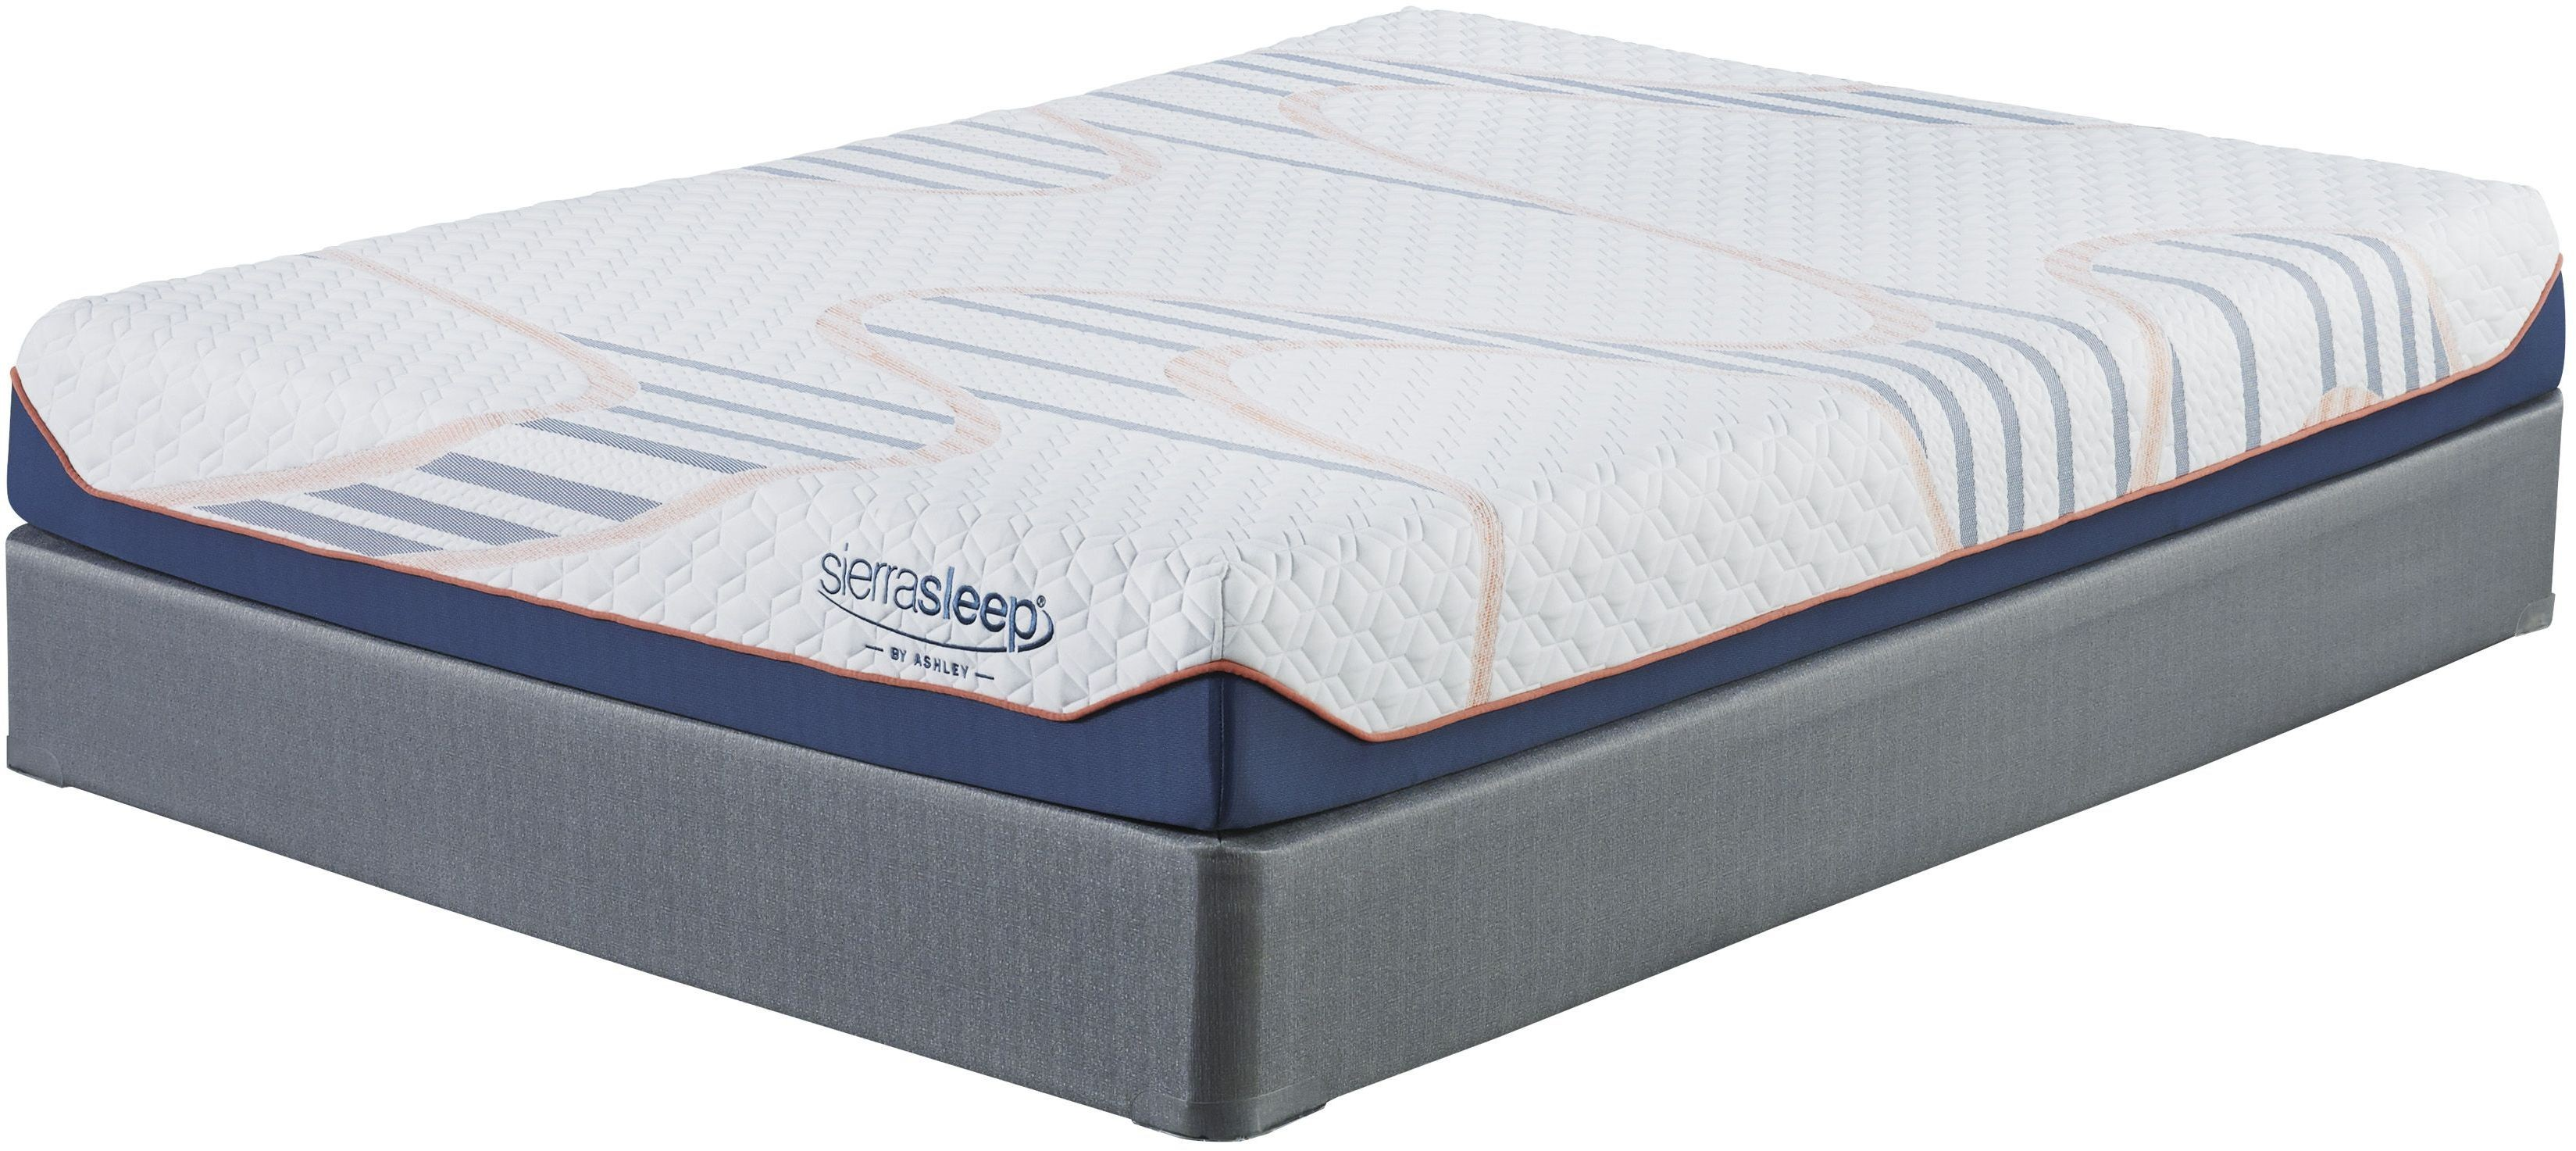 8 Inch Mygel White Cal King Mattress From Ashley Coleman Furniture